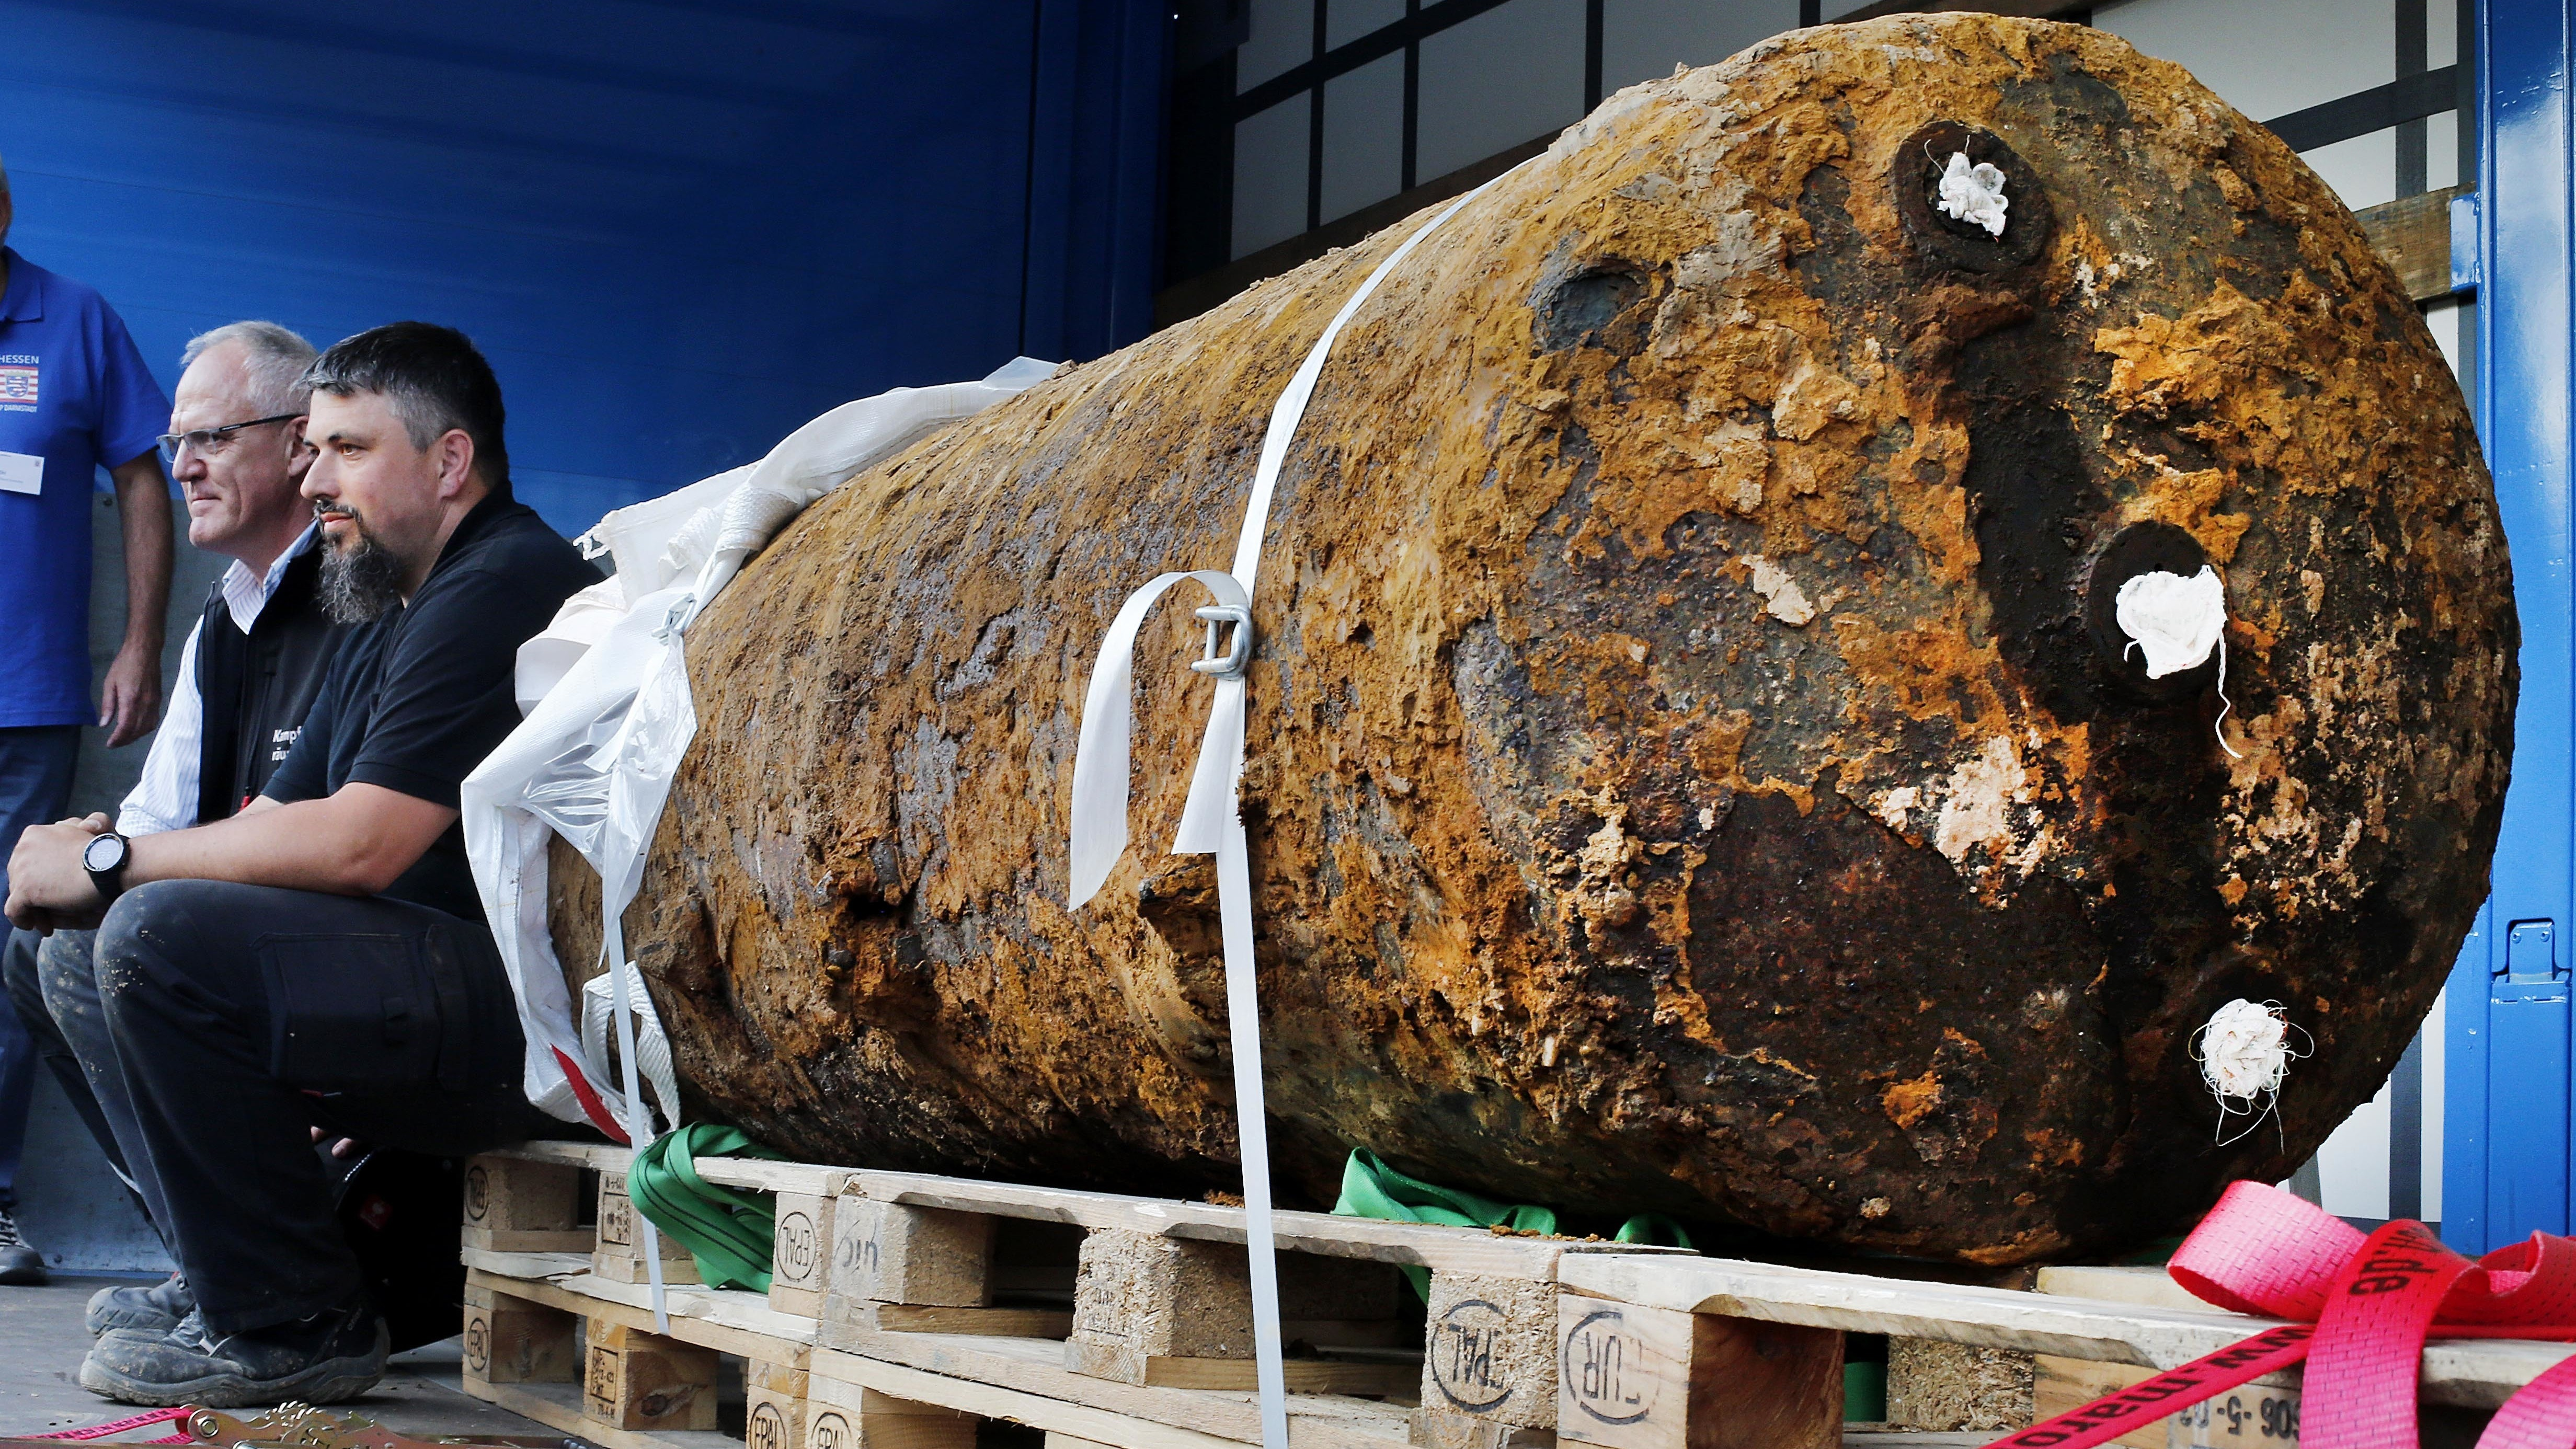 Bomb Successfully Defused Following 'Largest' Evacuation Of Post-World War II Germany